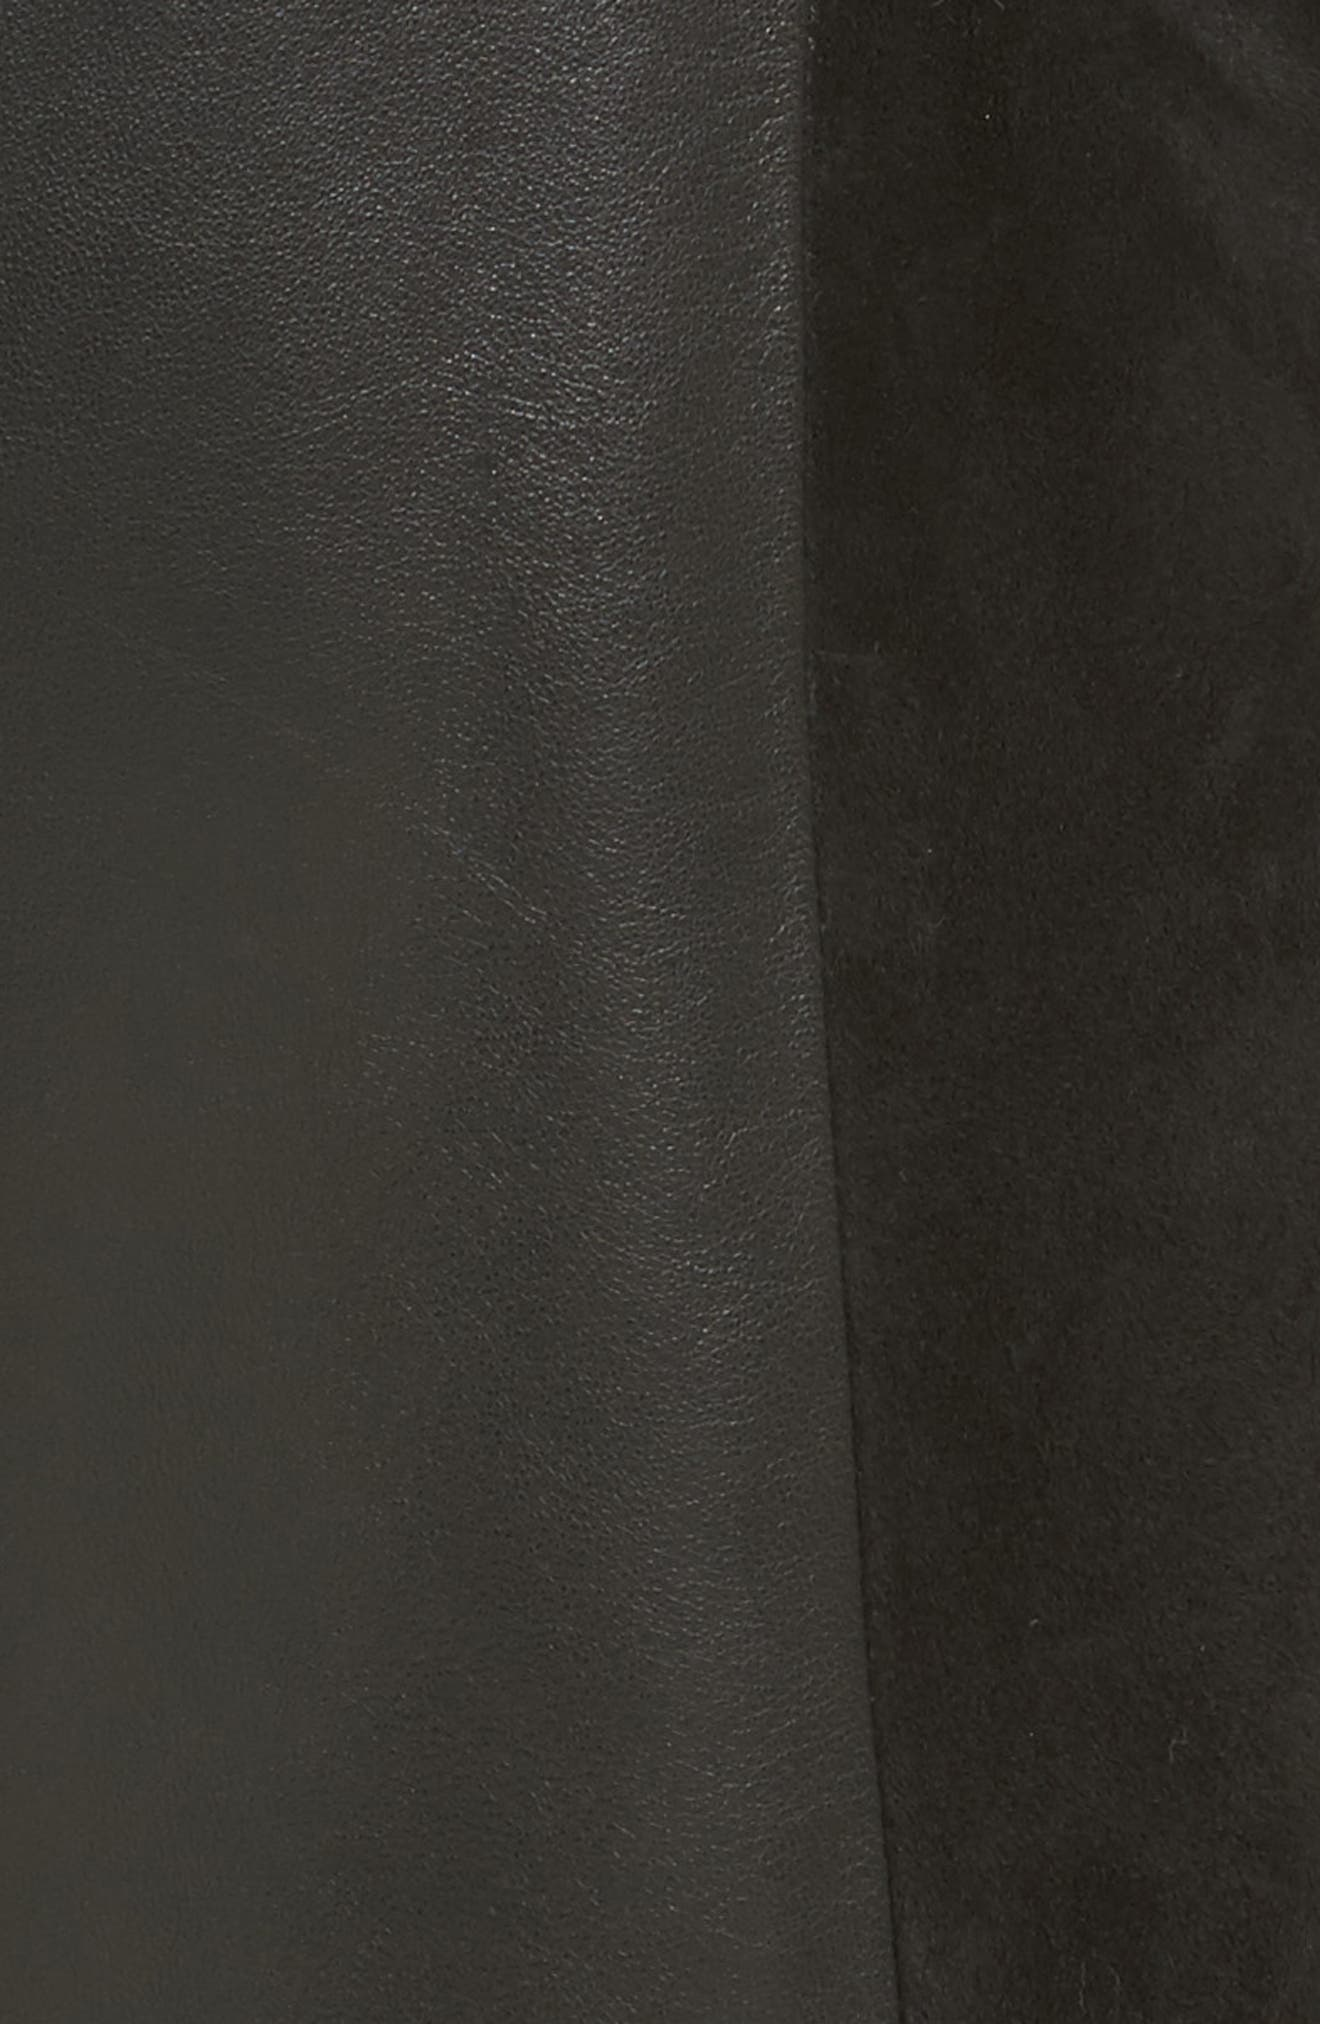 Paneled Suede & Leather Pants,                             Alternate thumbnail 5, color,                             001